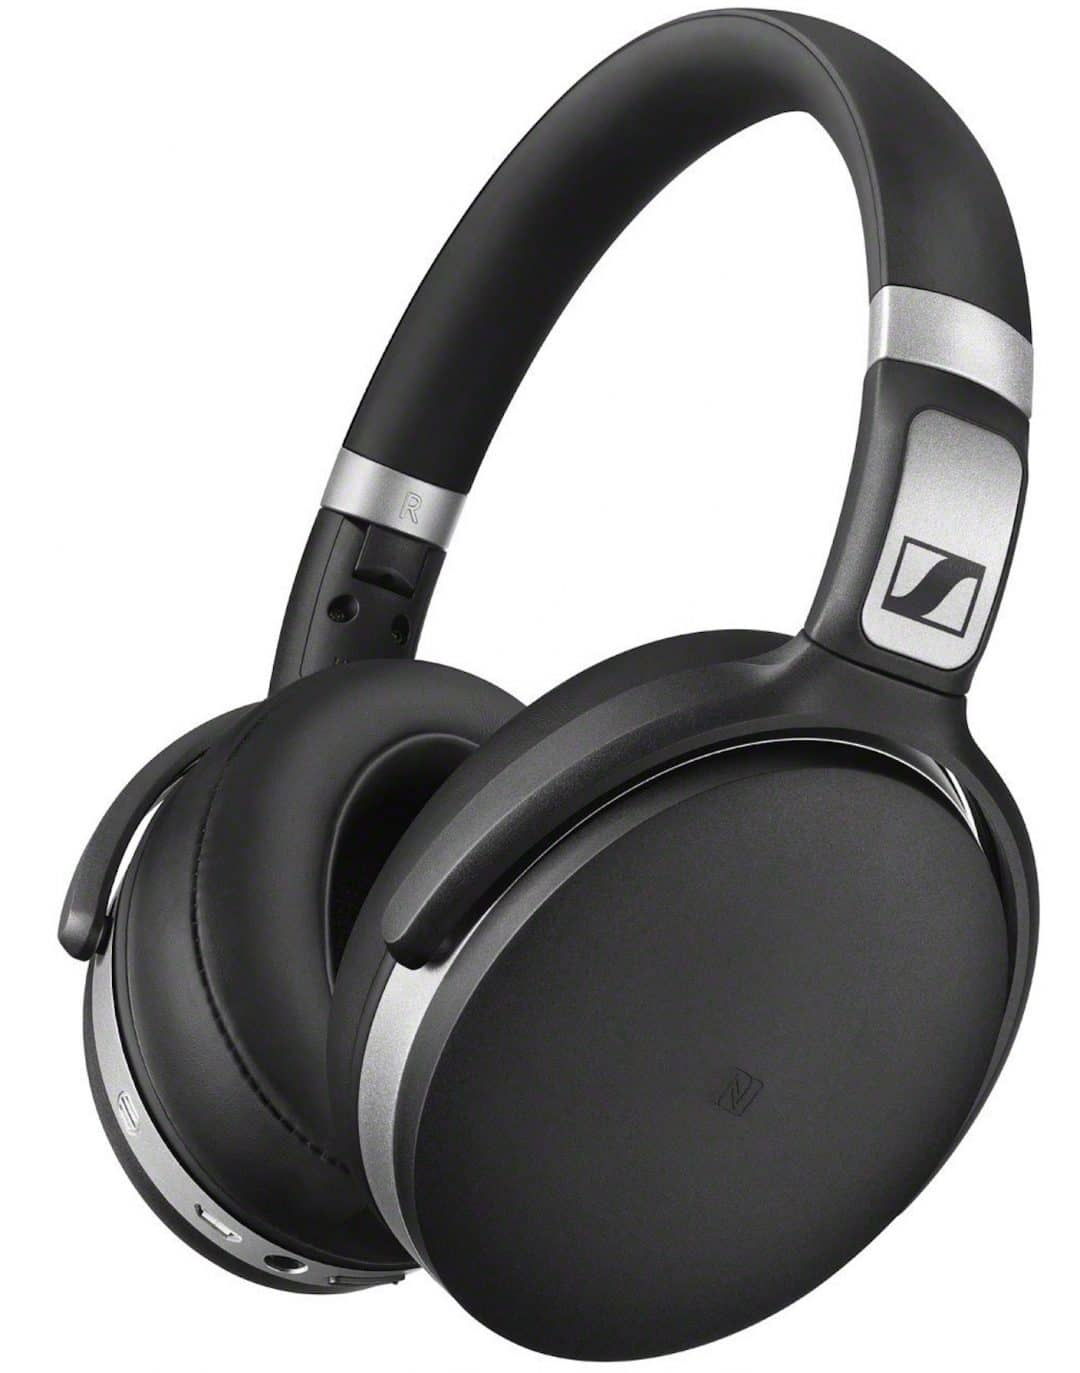 d6c494fe1c6 Noise cancellation can often be a useful solution when wanting to listen to  music in noisy environments. Paul Rigby reviews the latest in this  burgeoning ...